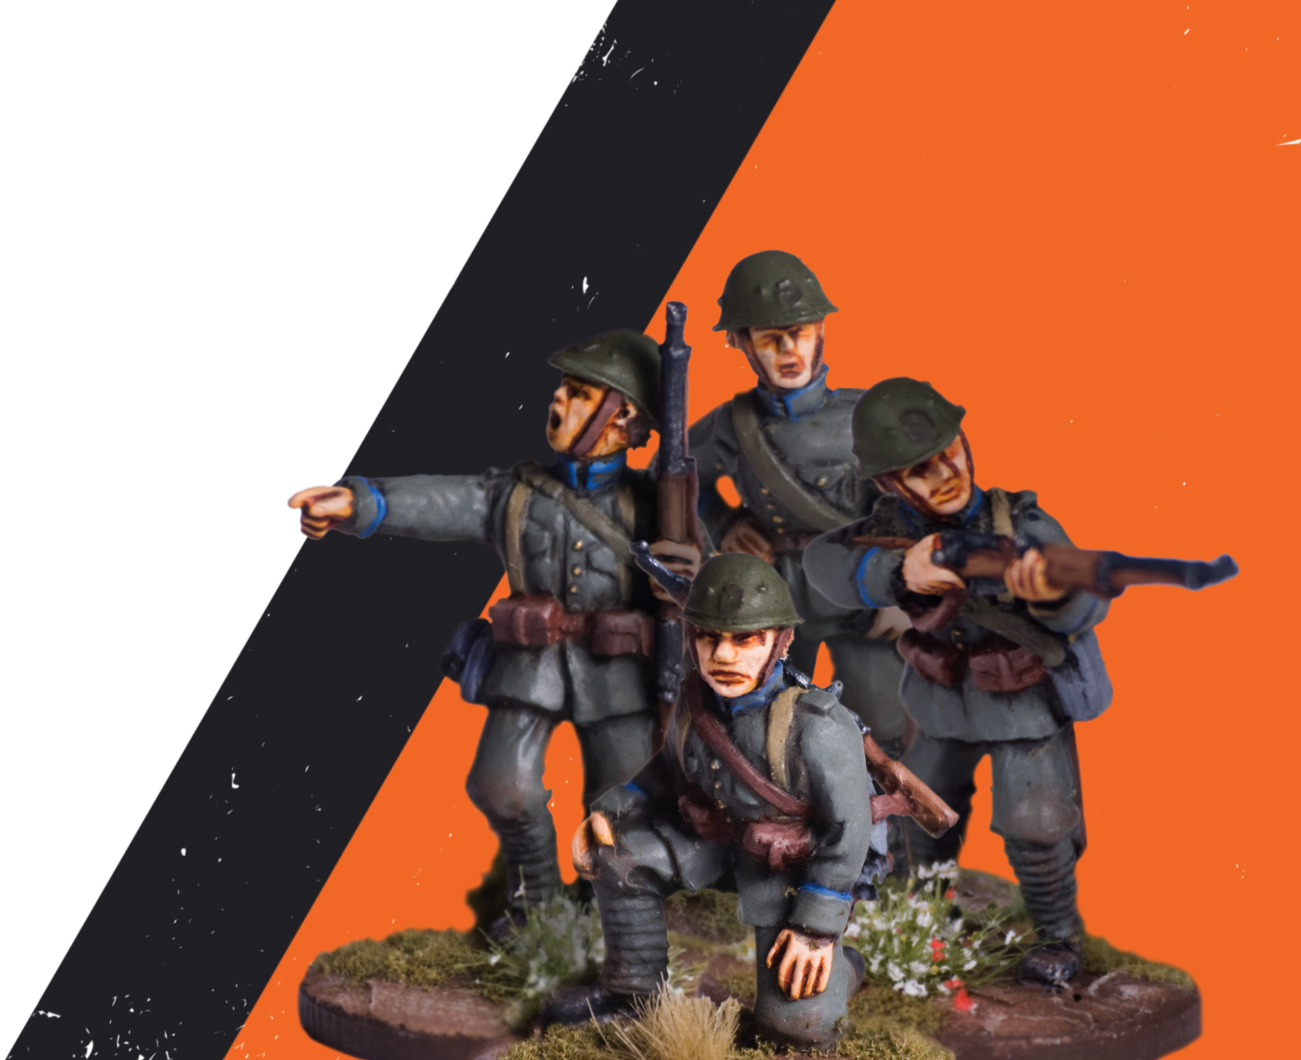 May '40 miniatures | 28mm Miniatures of the Dutch soldier